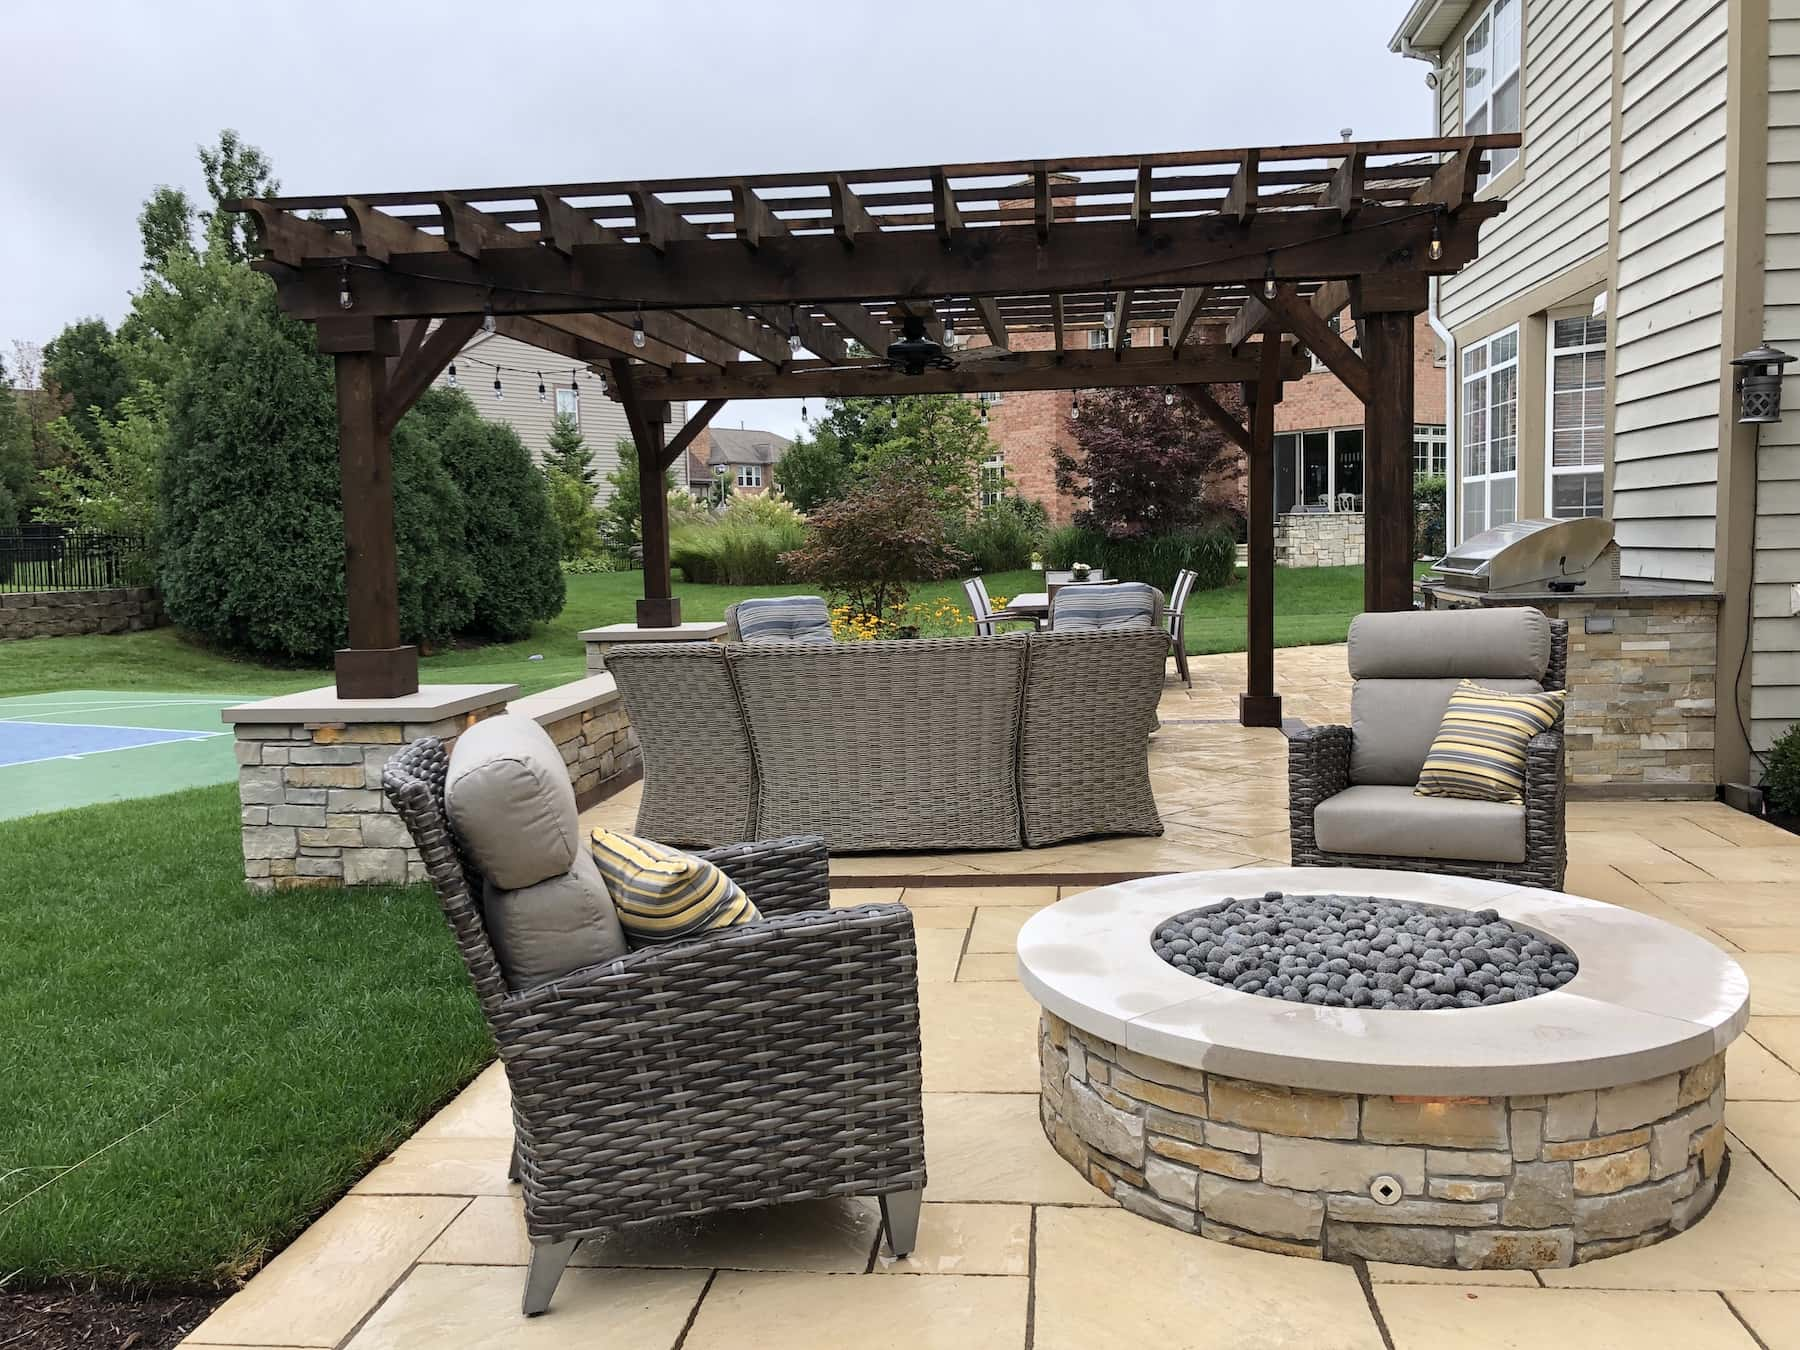 cedar sawn pergola stone paver patio fire pit landscaping outdoor dining northbrook il